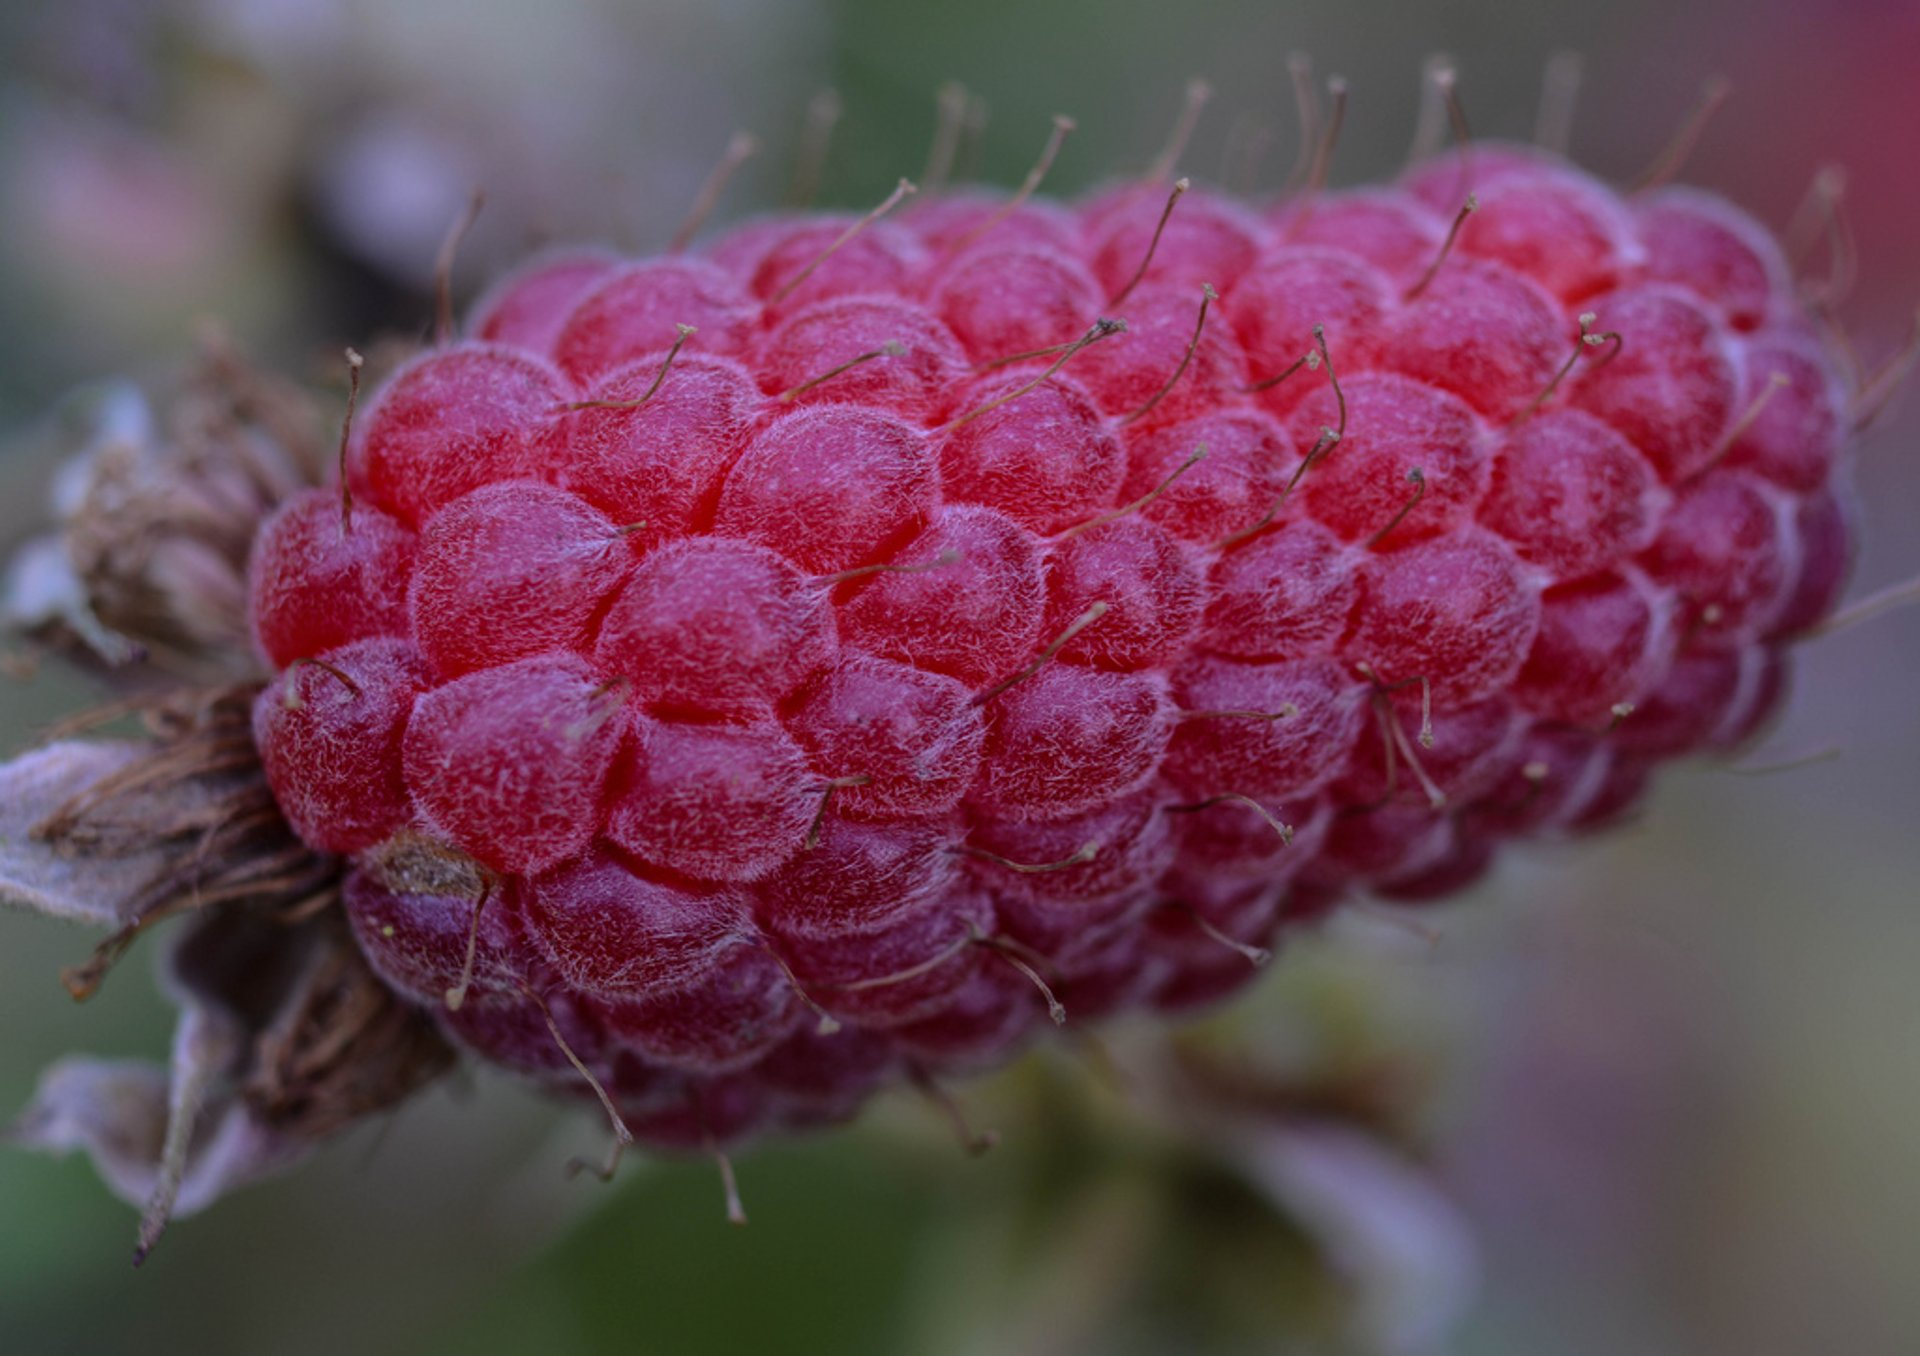 Loganberries in Ireland 2019 - Best Time